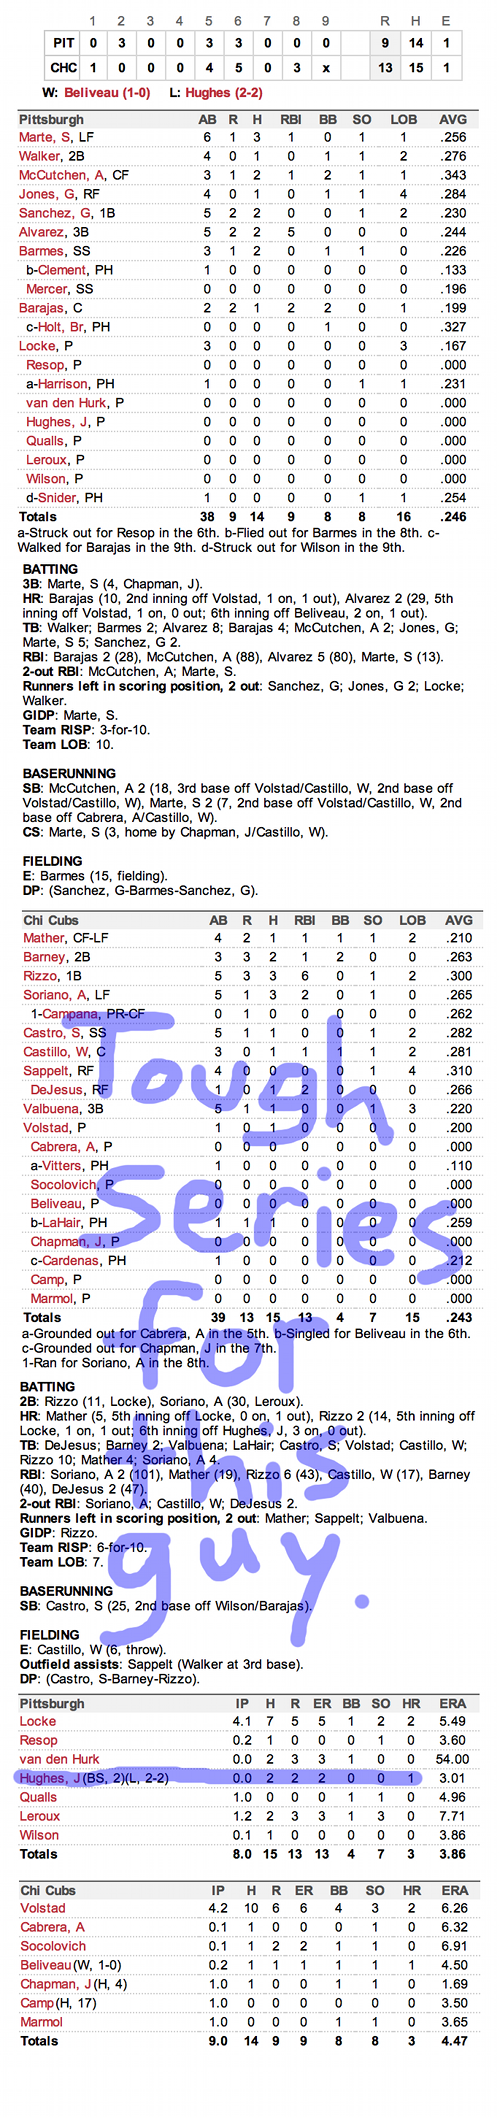 Enhanced Box Score: Pirates 9, Cubs 13 – September 16, 2012